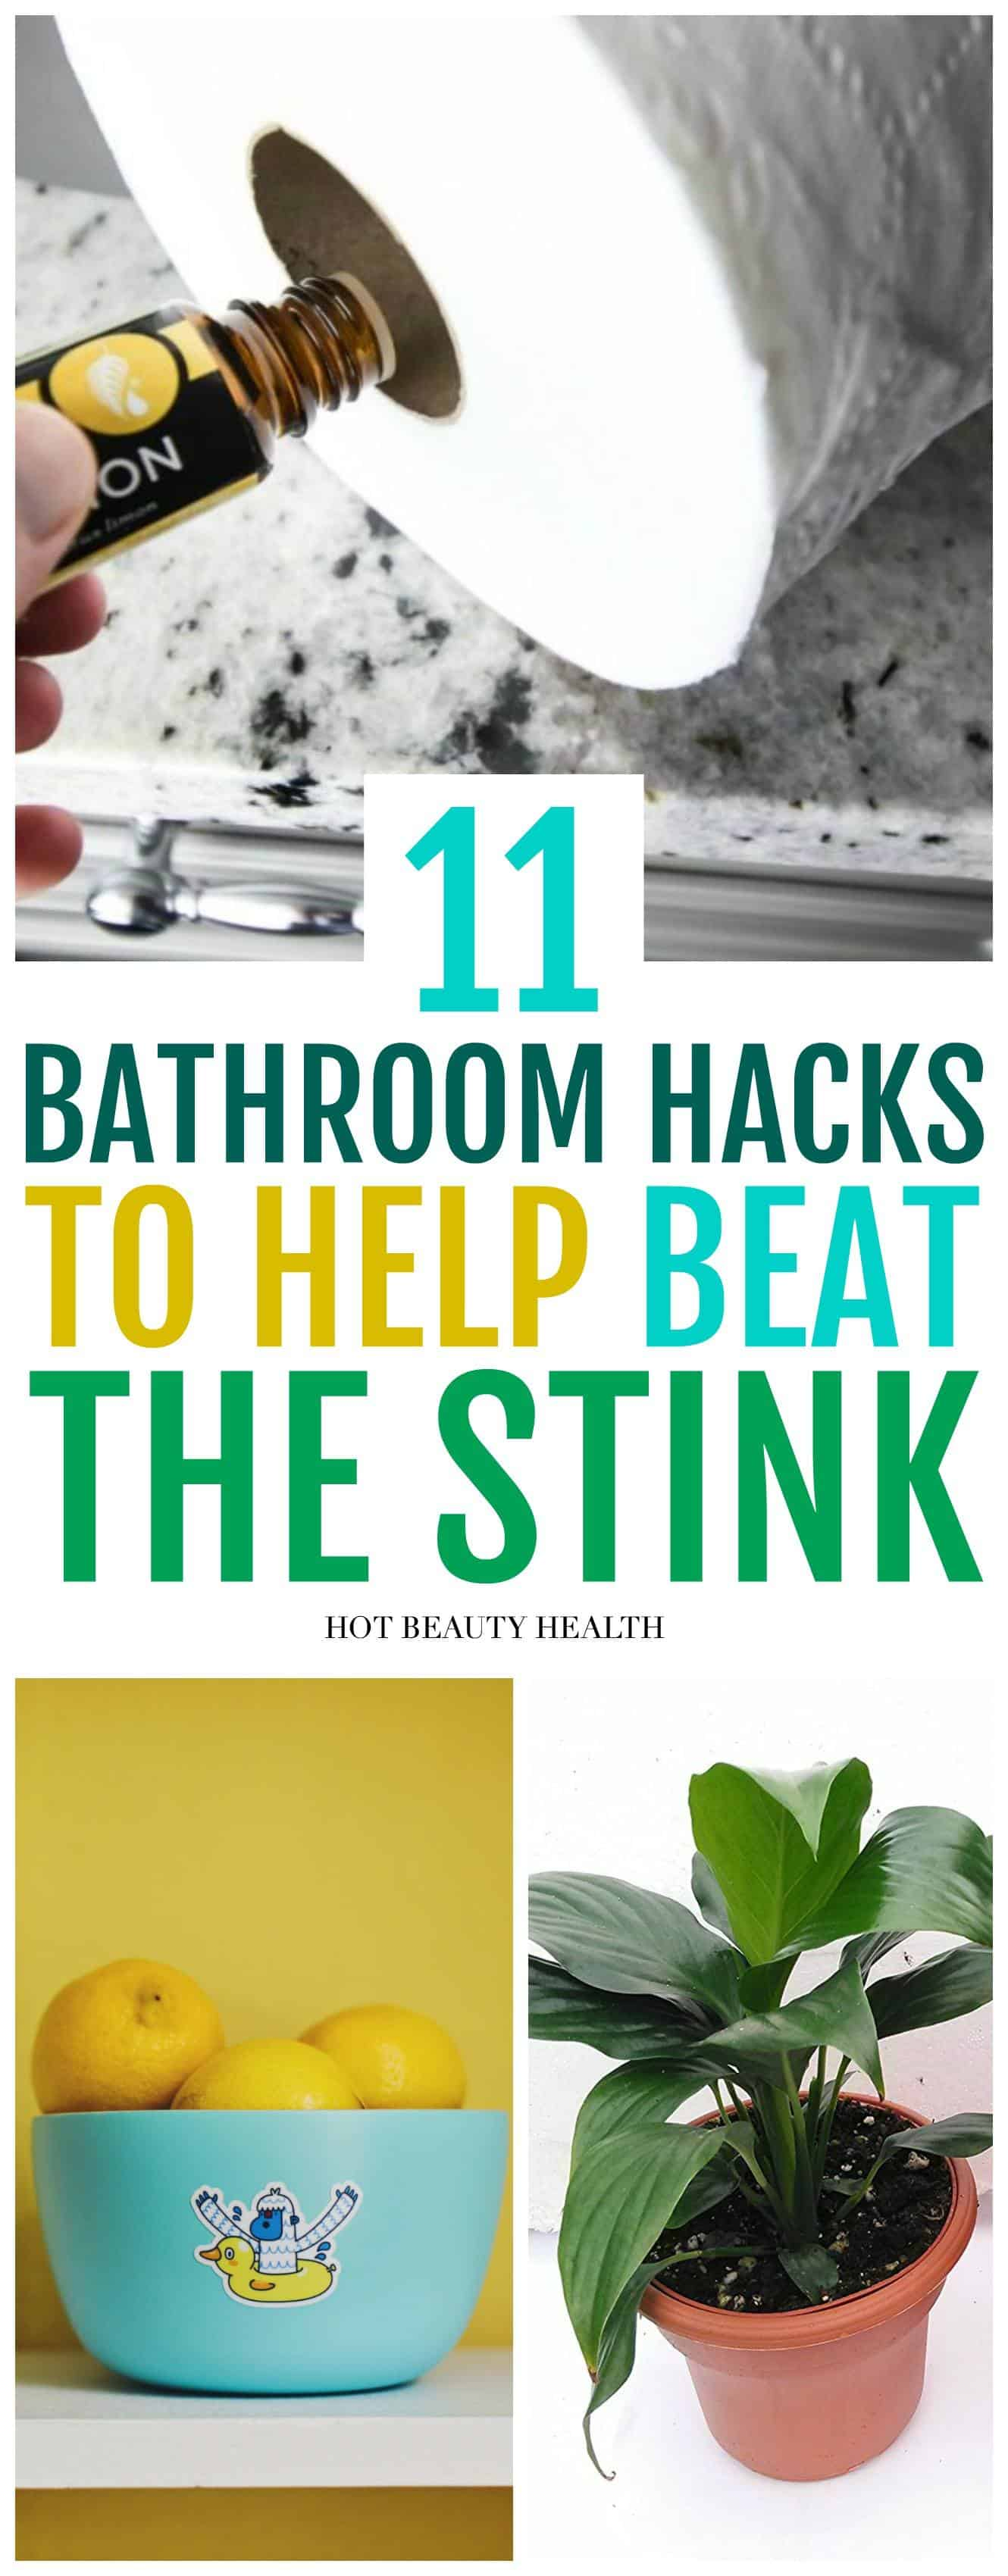 11 easy ways to get rid of bathroom smells How to get rid of shower smell